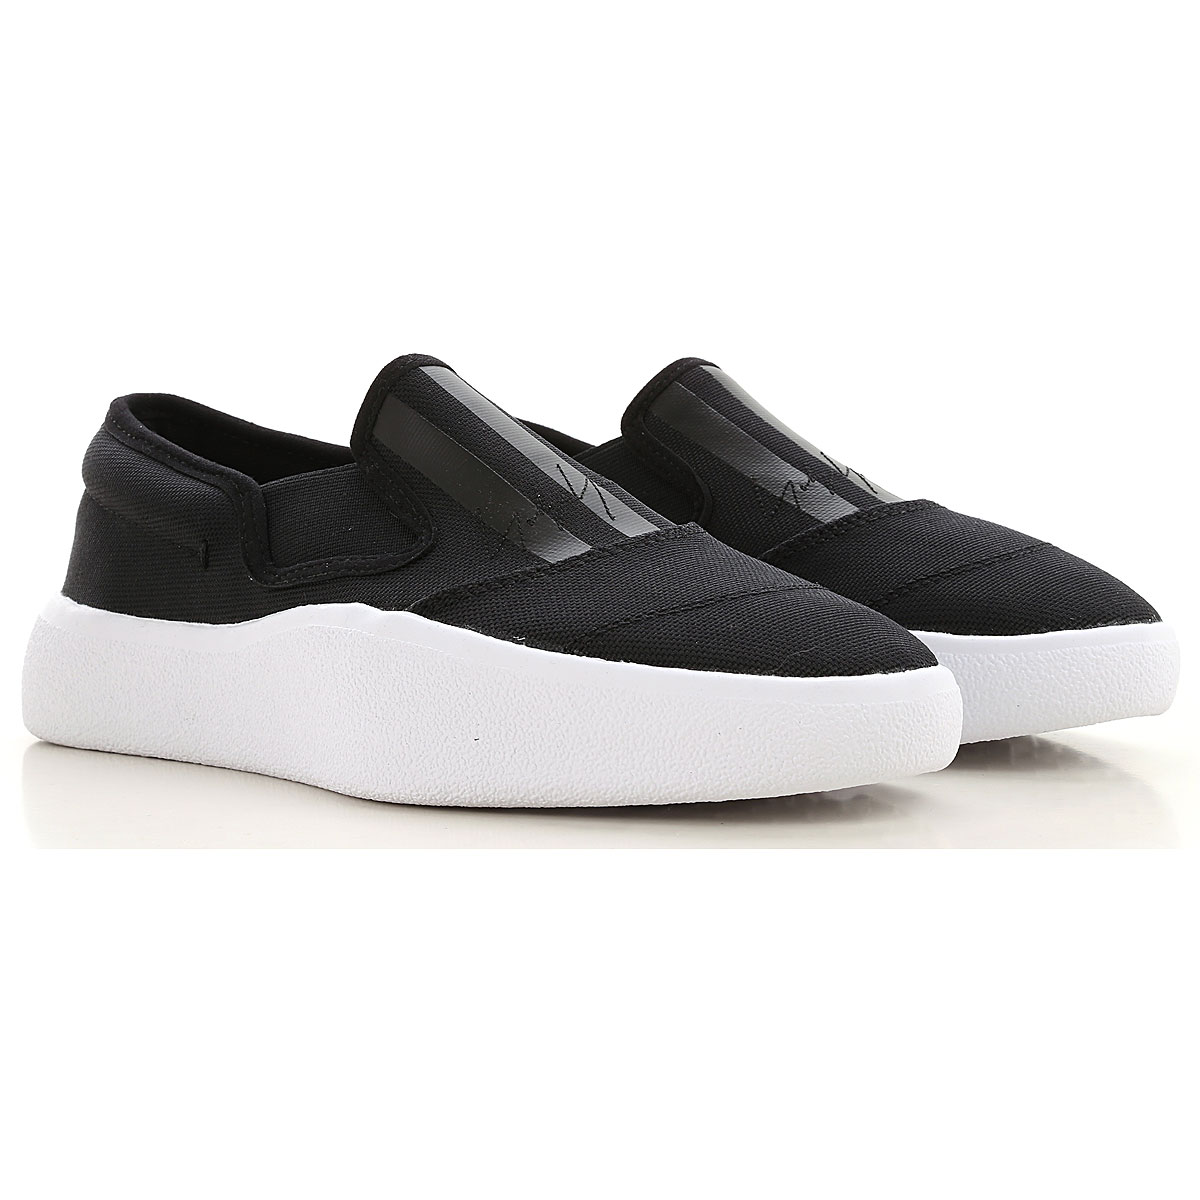 Y3 by Yohji Yamamoto Slip on Sneakers for Women On Sale in Outlet, Black, Woven Fabric, 2019, 4.5 5.5 6